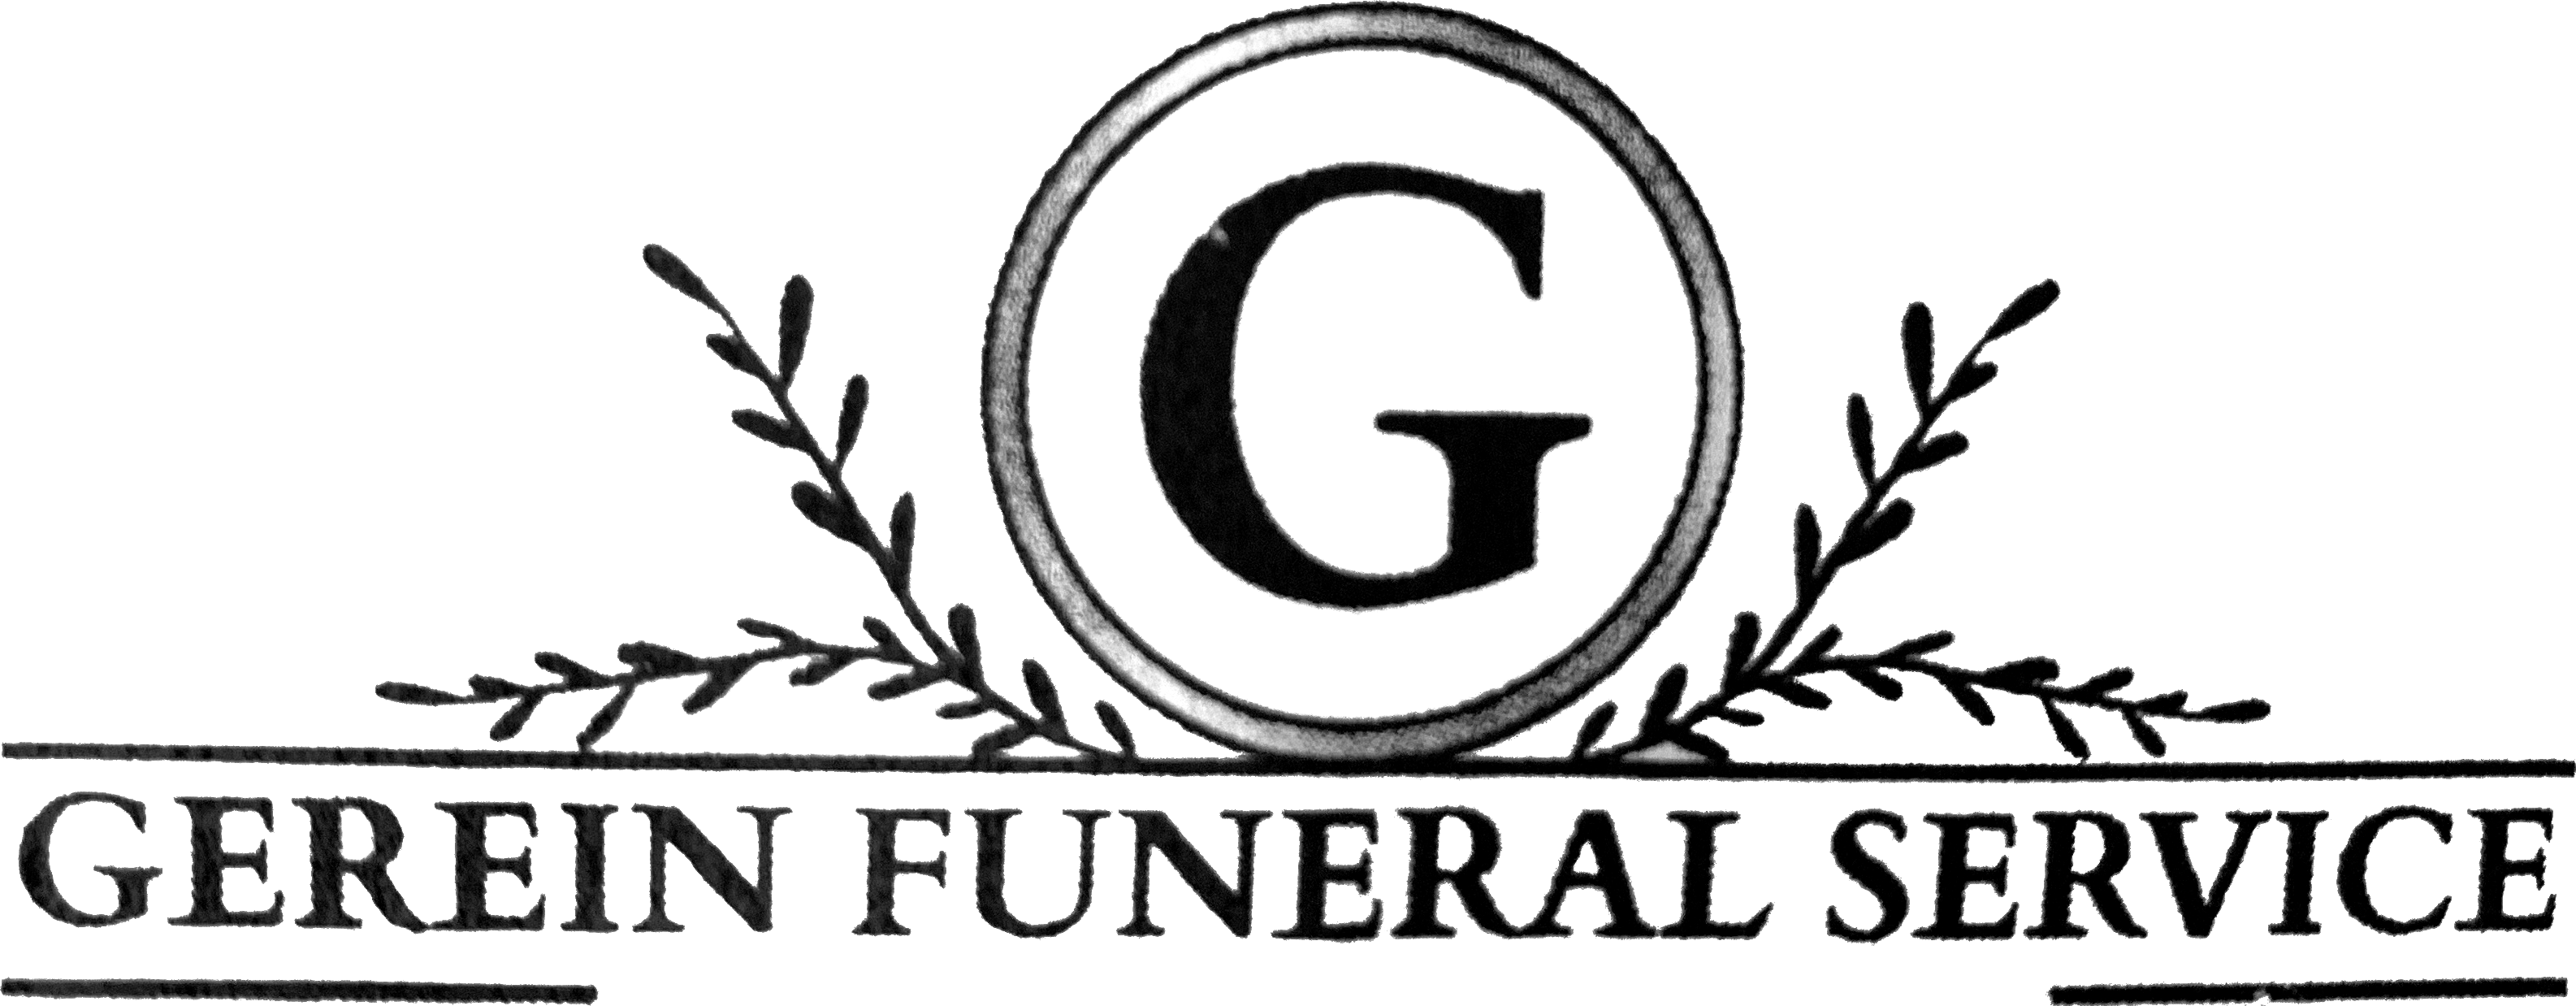 Gerein Funeral Services